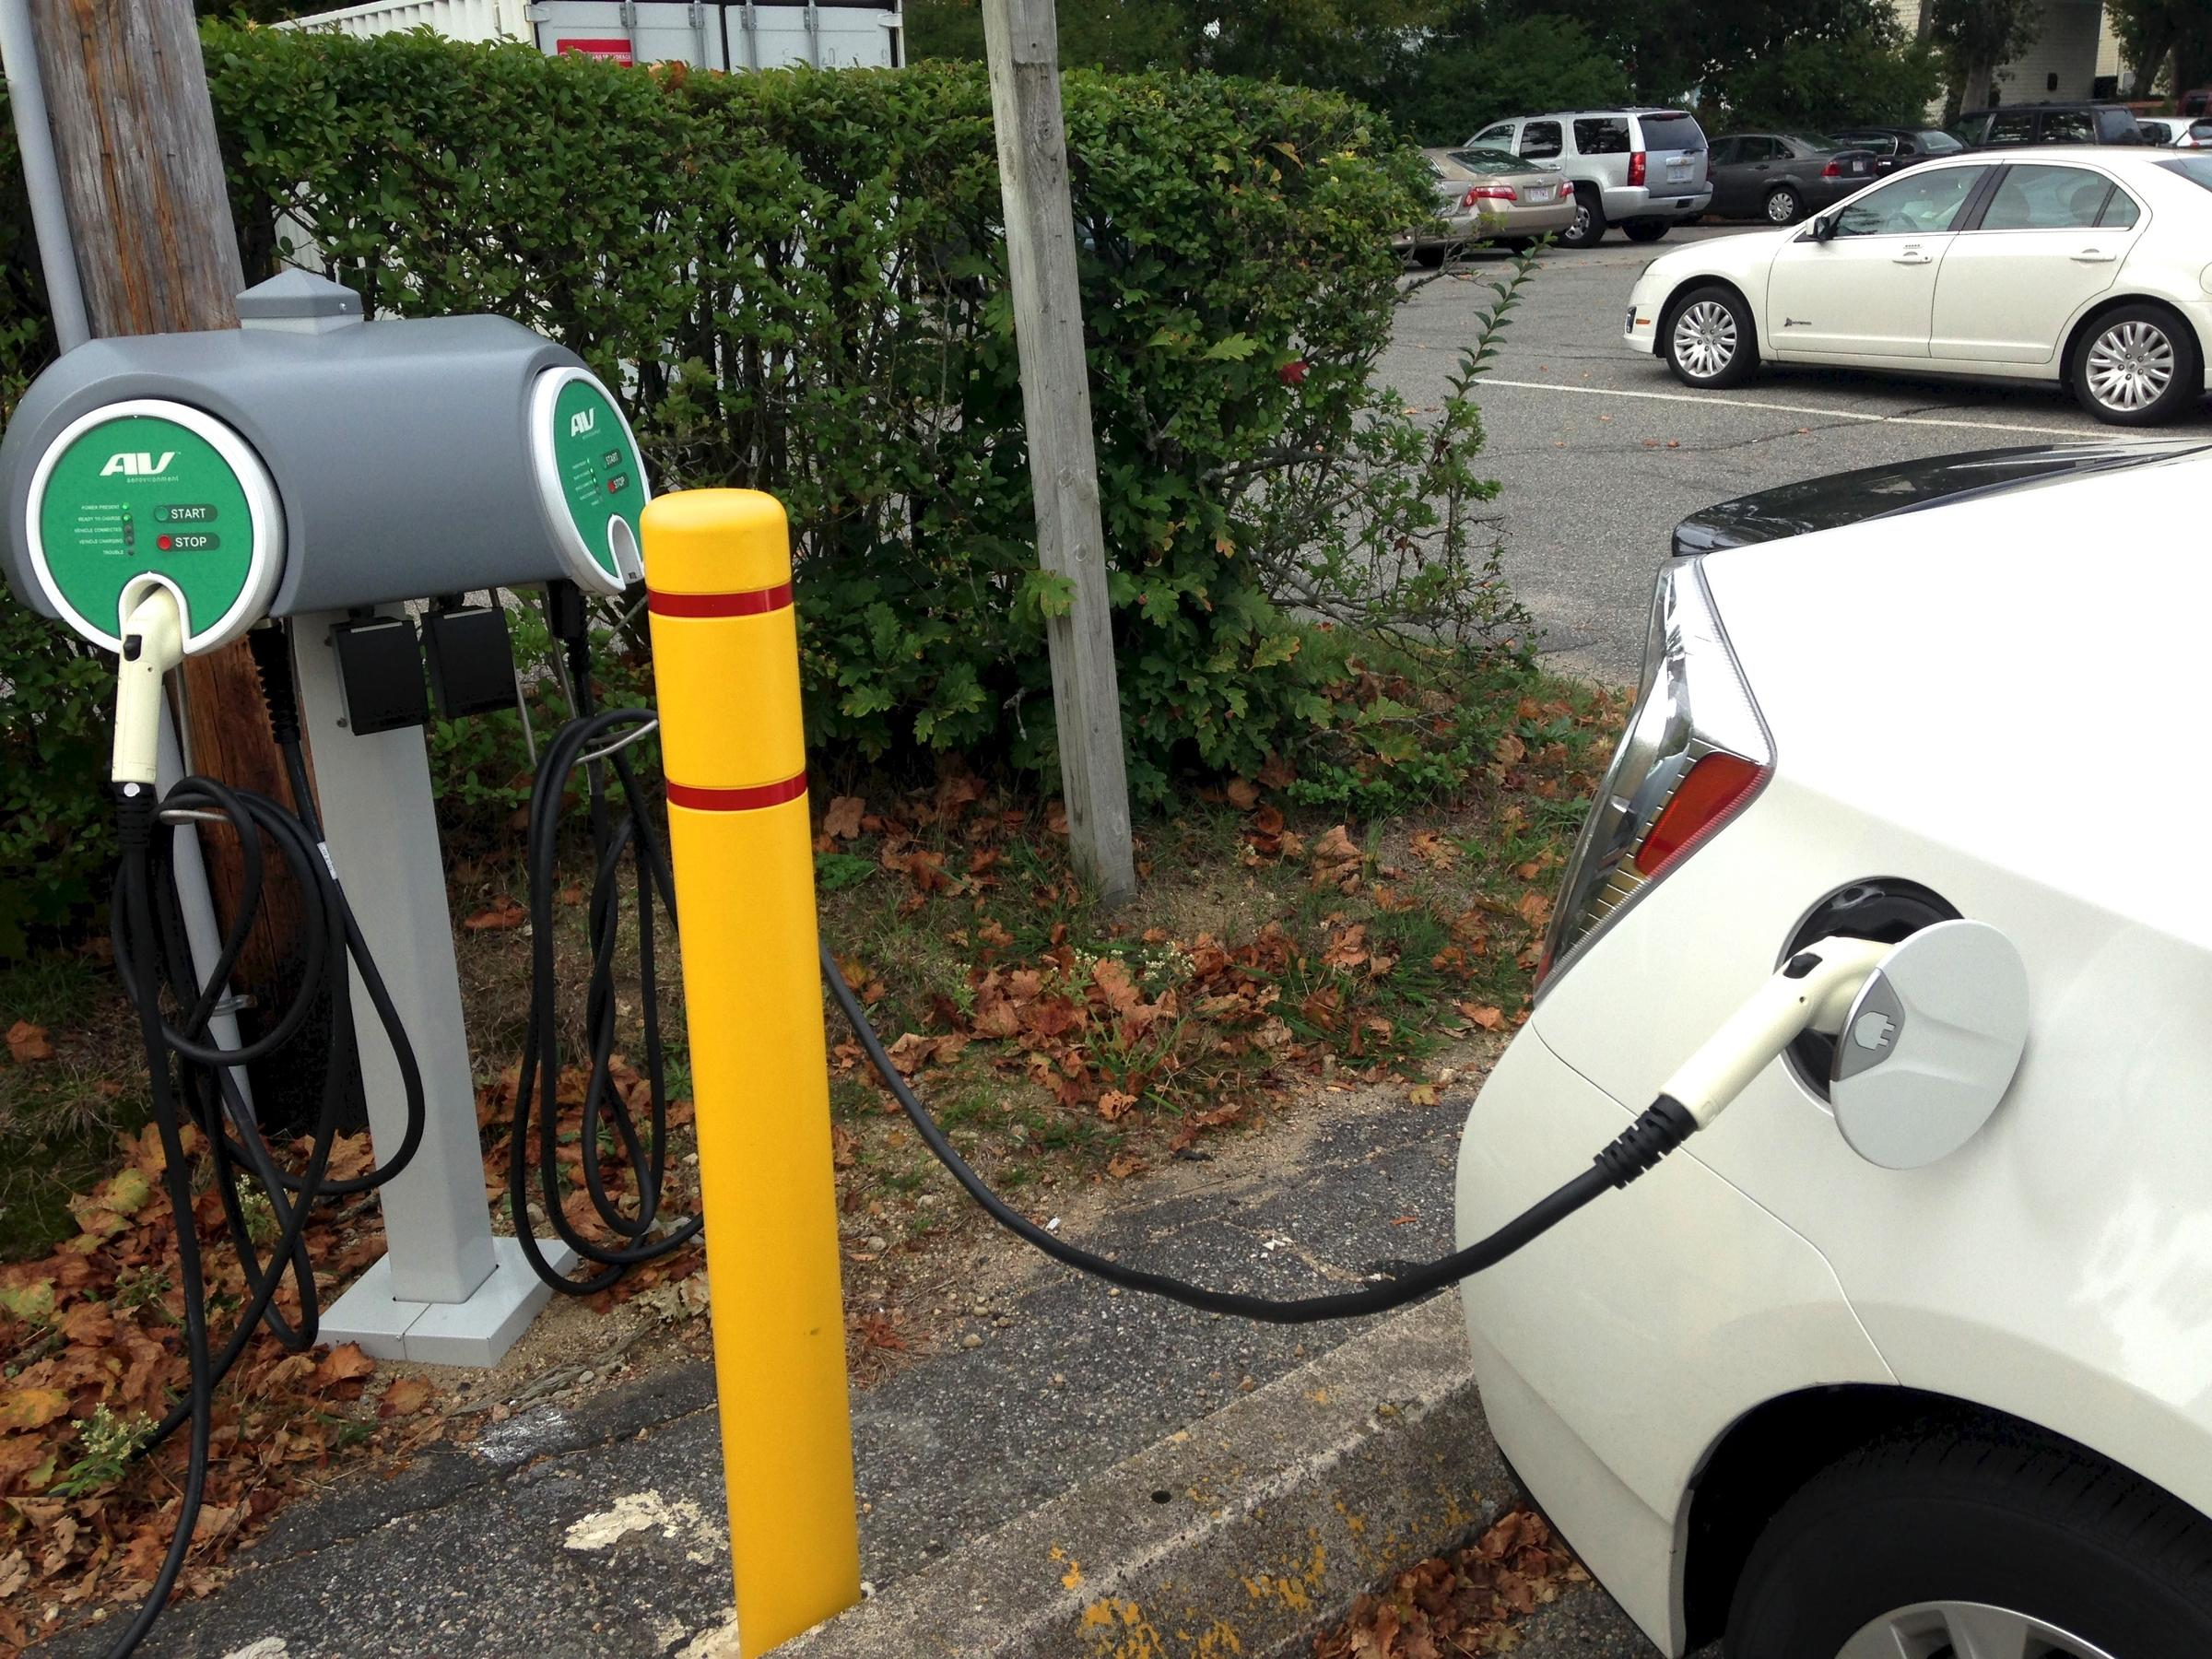 Electric Vehicle Charging Stations Still Sparse On Cape Islands And Comparison Between Cars Gasoline Ev Station In Barnstable